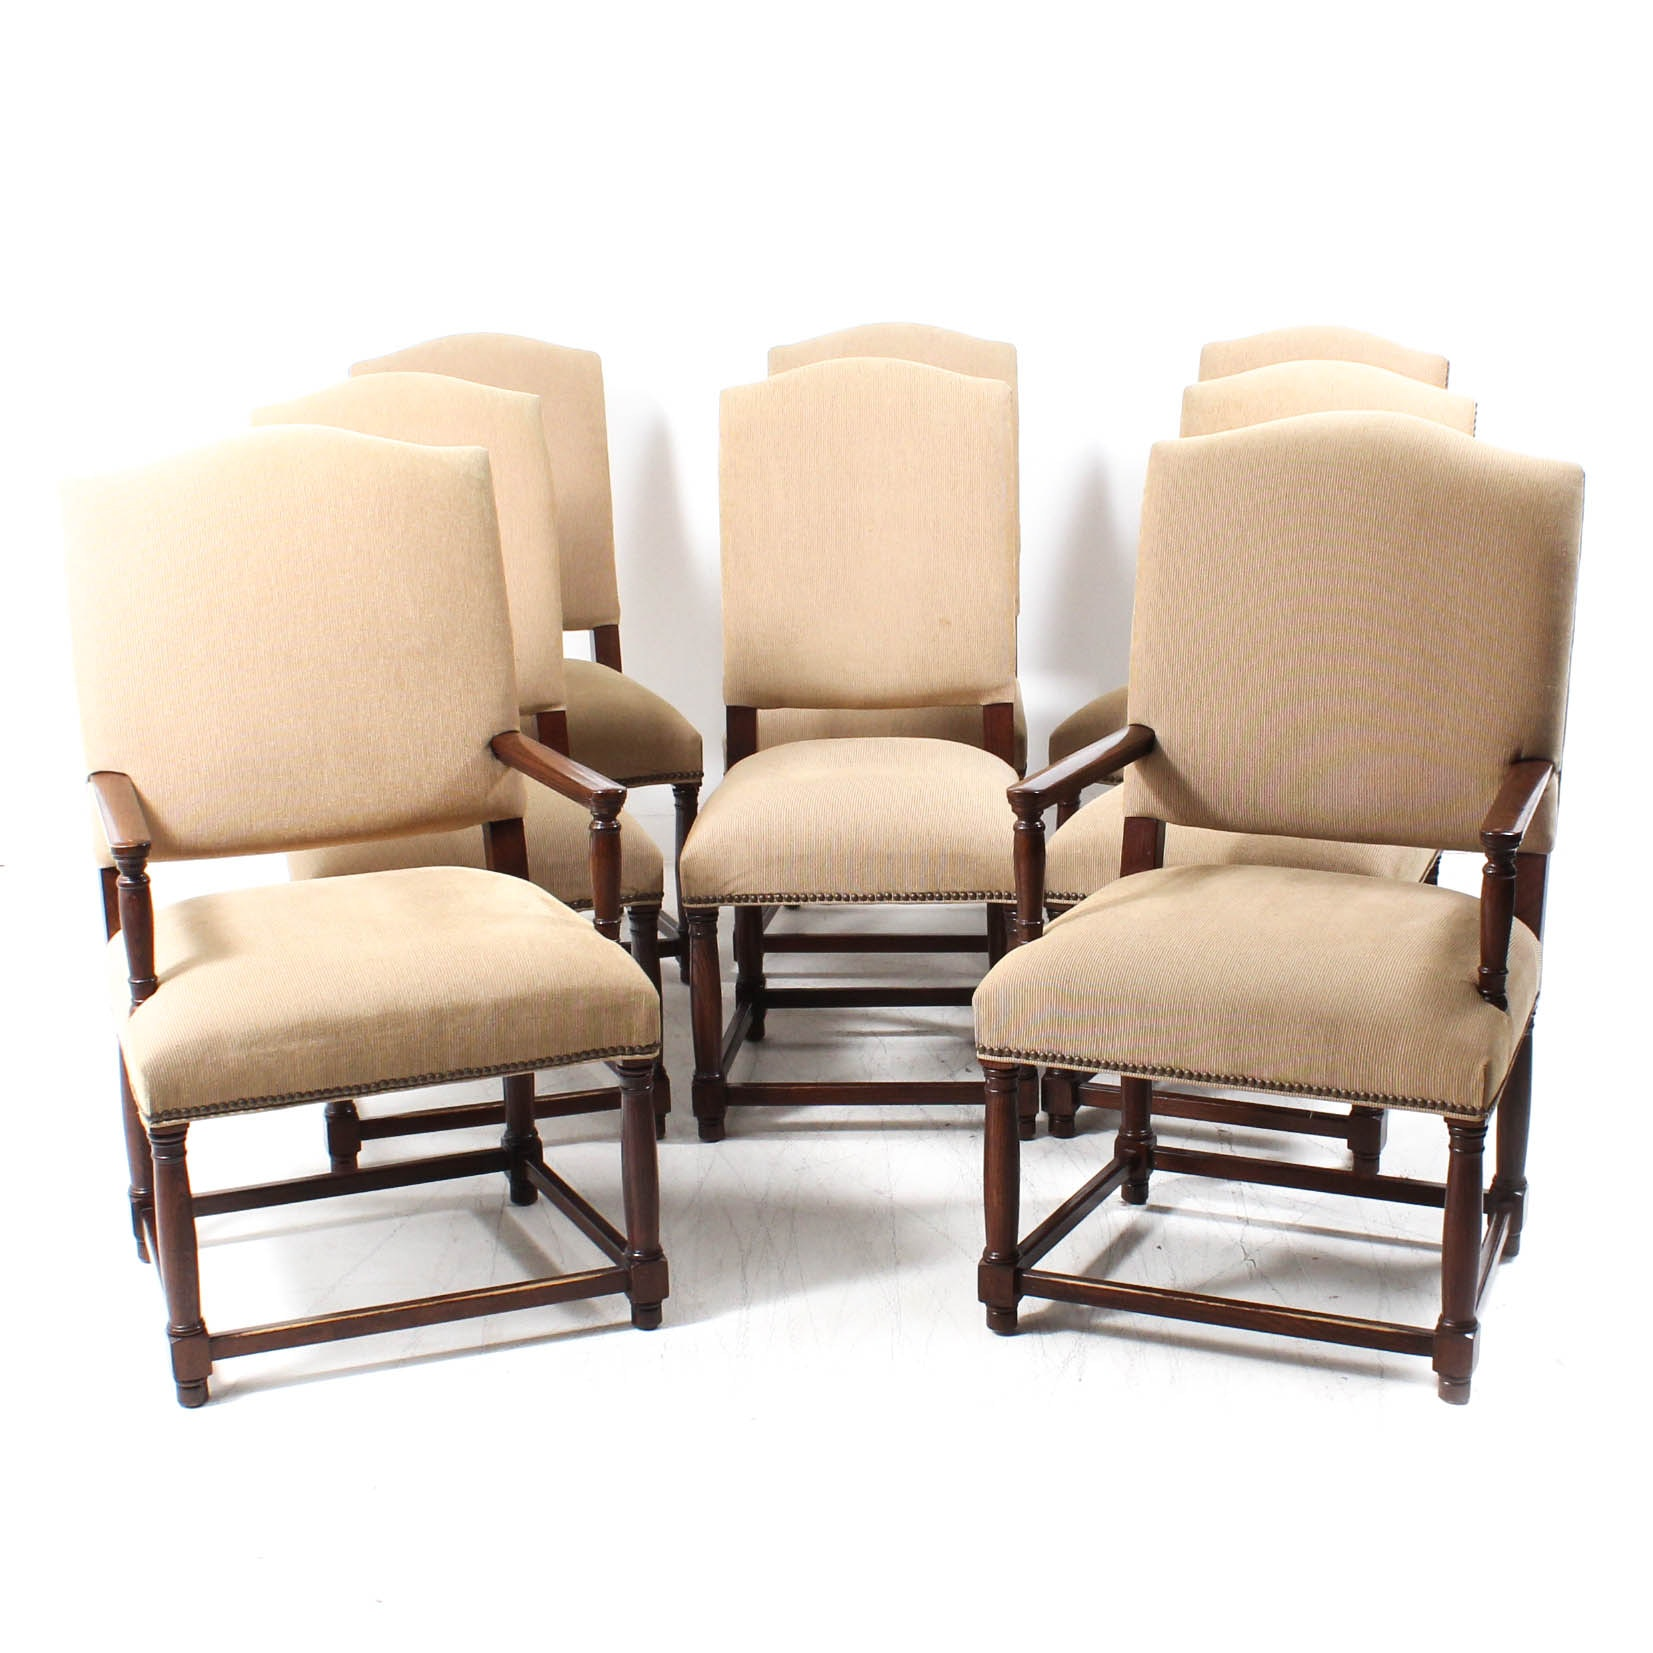 Restoration Hardware Camelback Dining Chairs